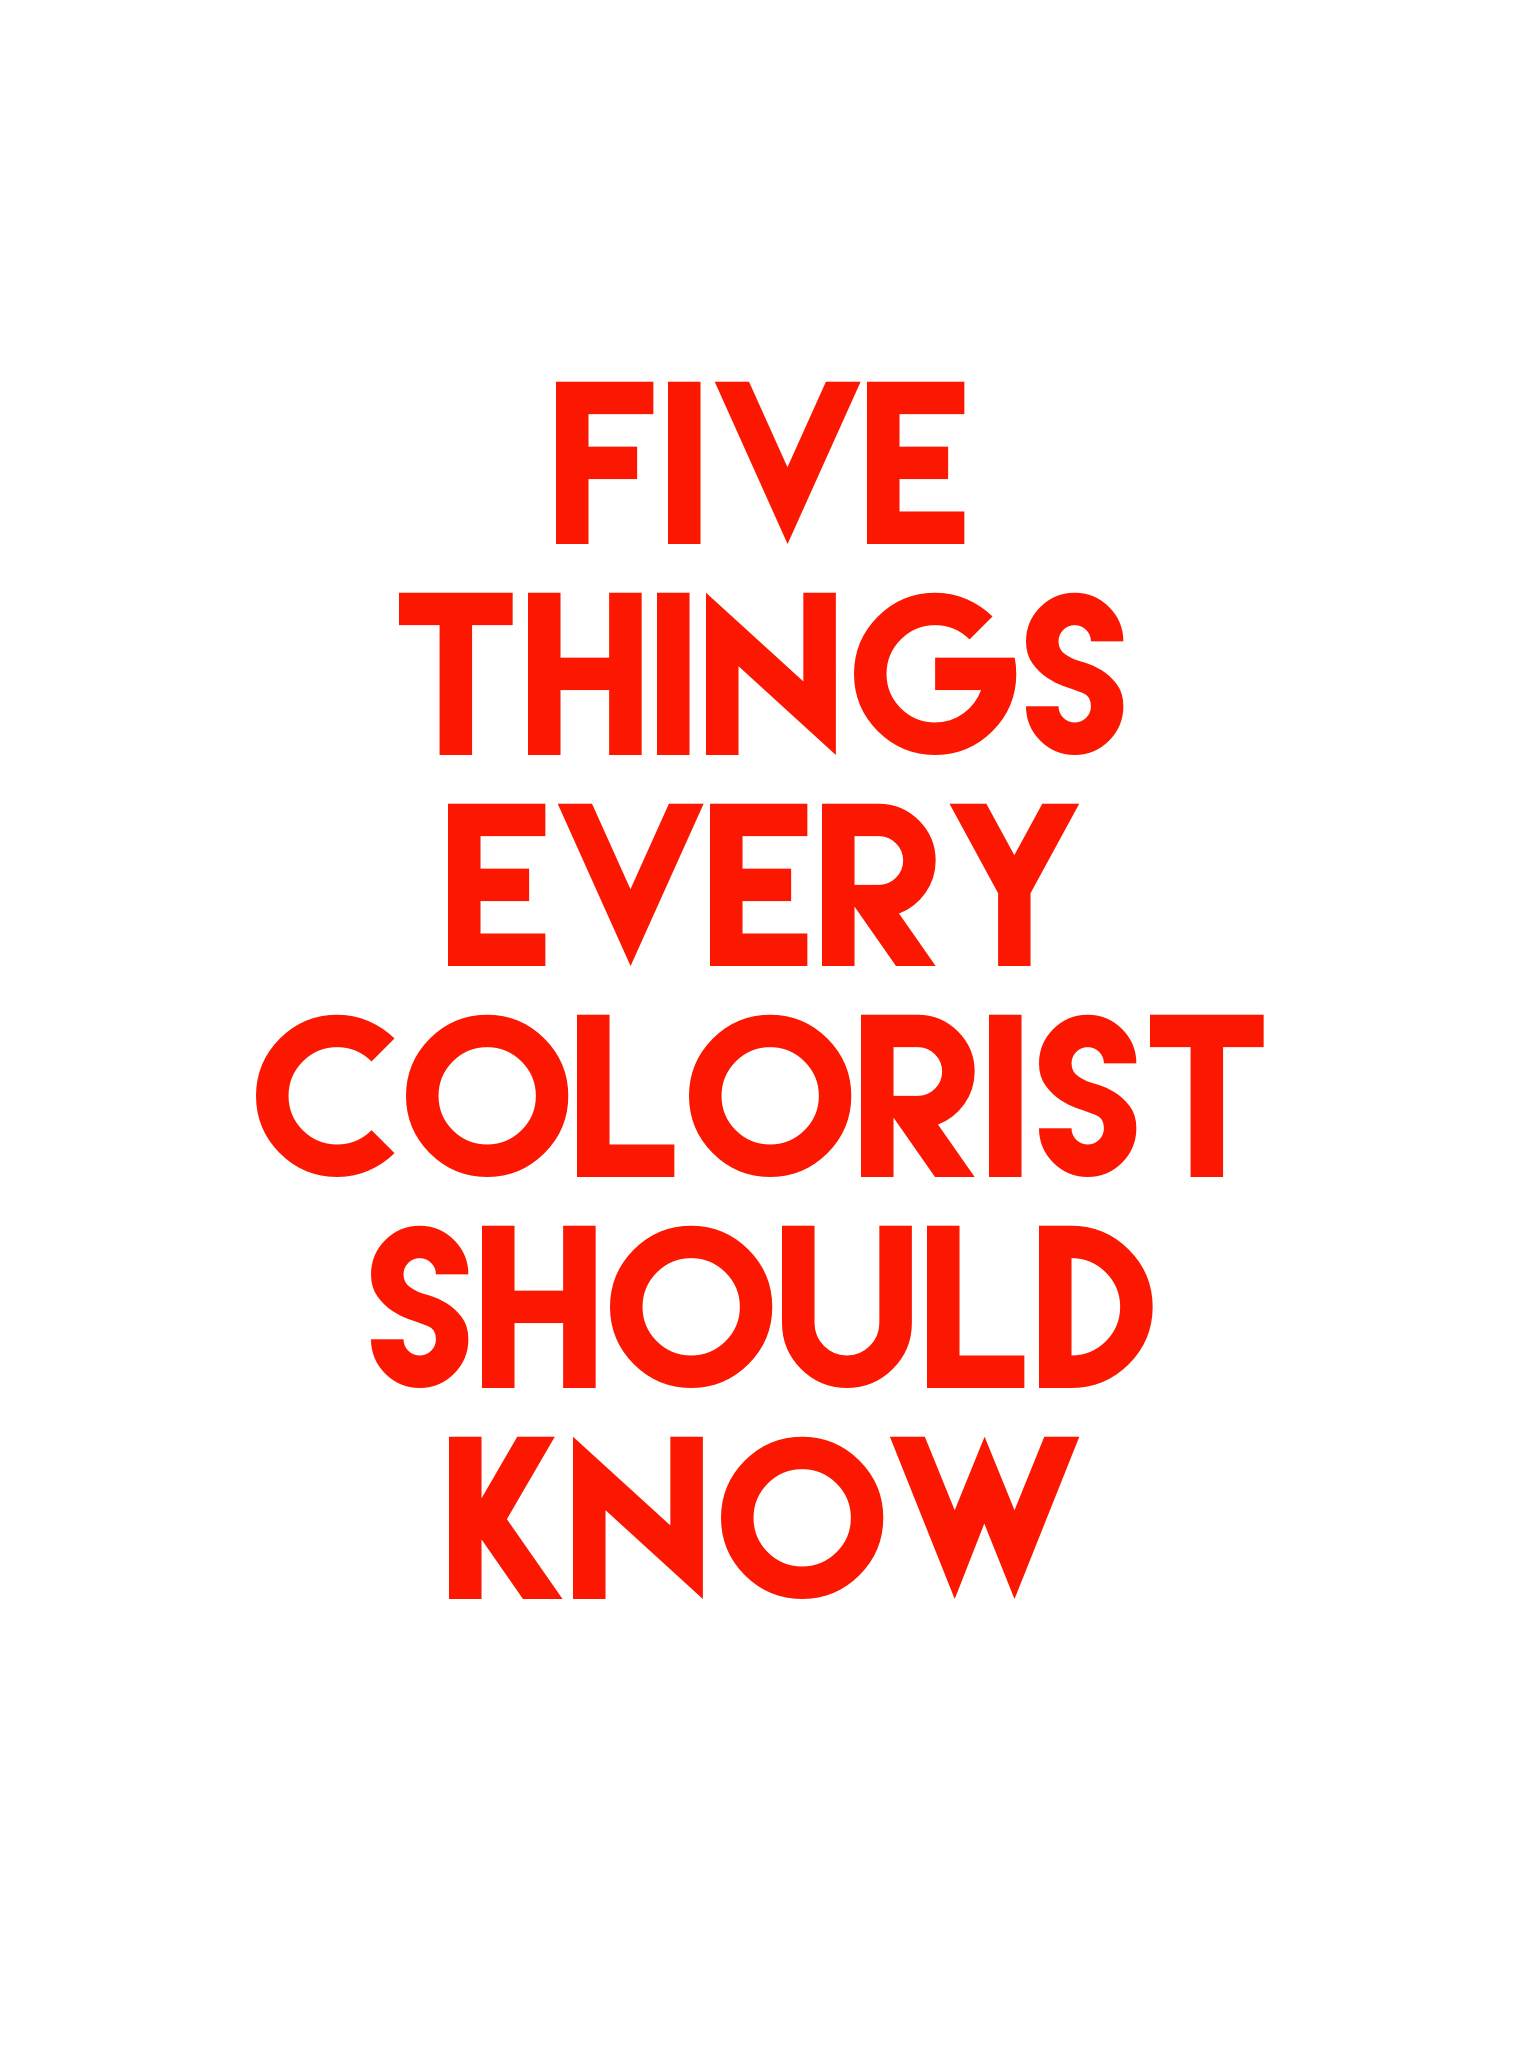 The Five Things Every Colorist Should Know